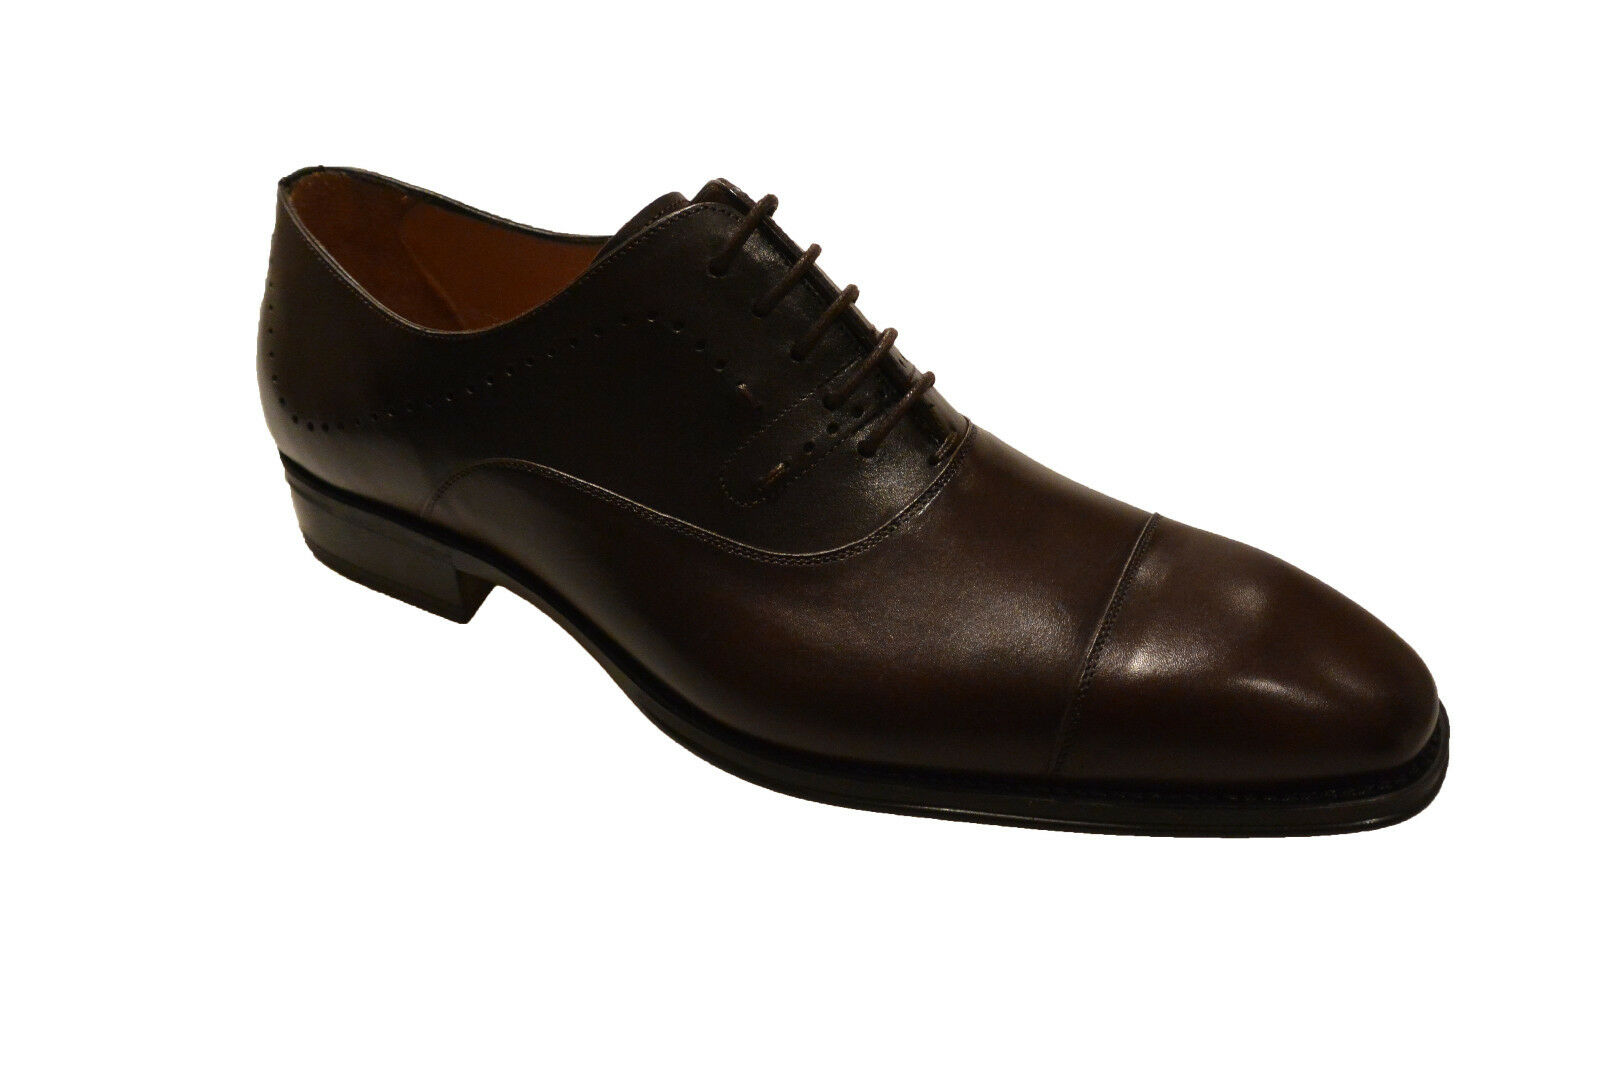 NIB Mens Mezlan 6368 Fermo Leather Lace Up Dress shoes in Dark Brown